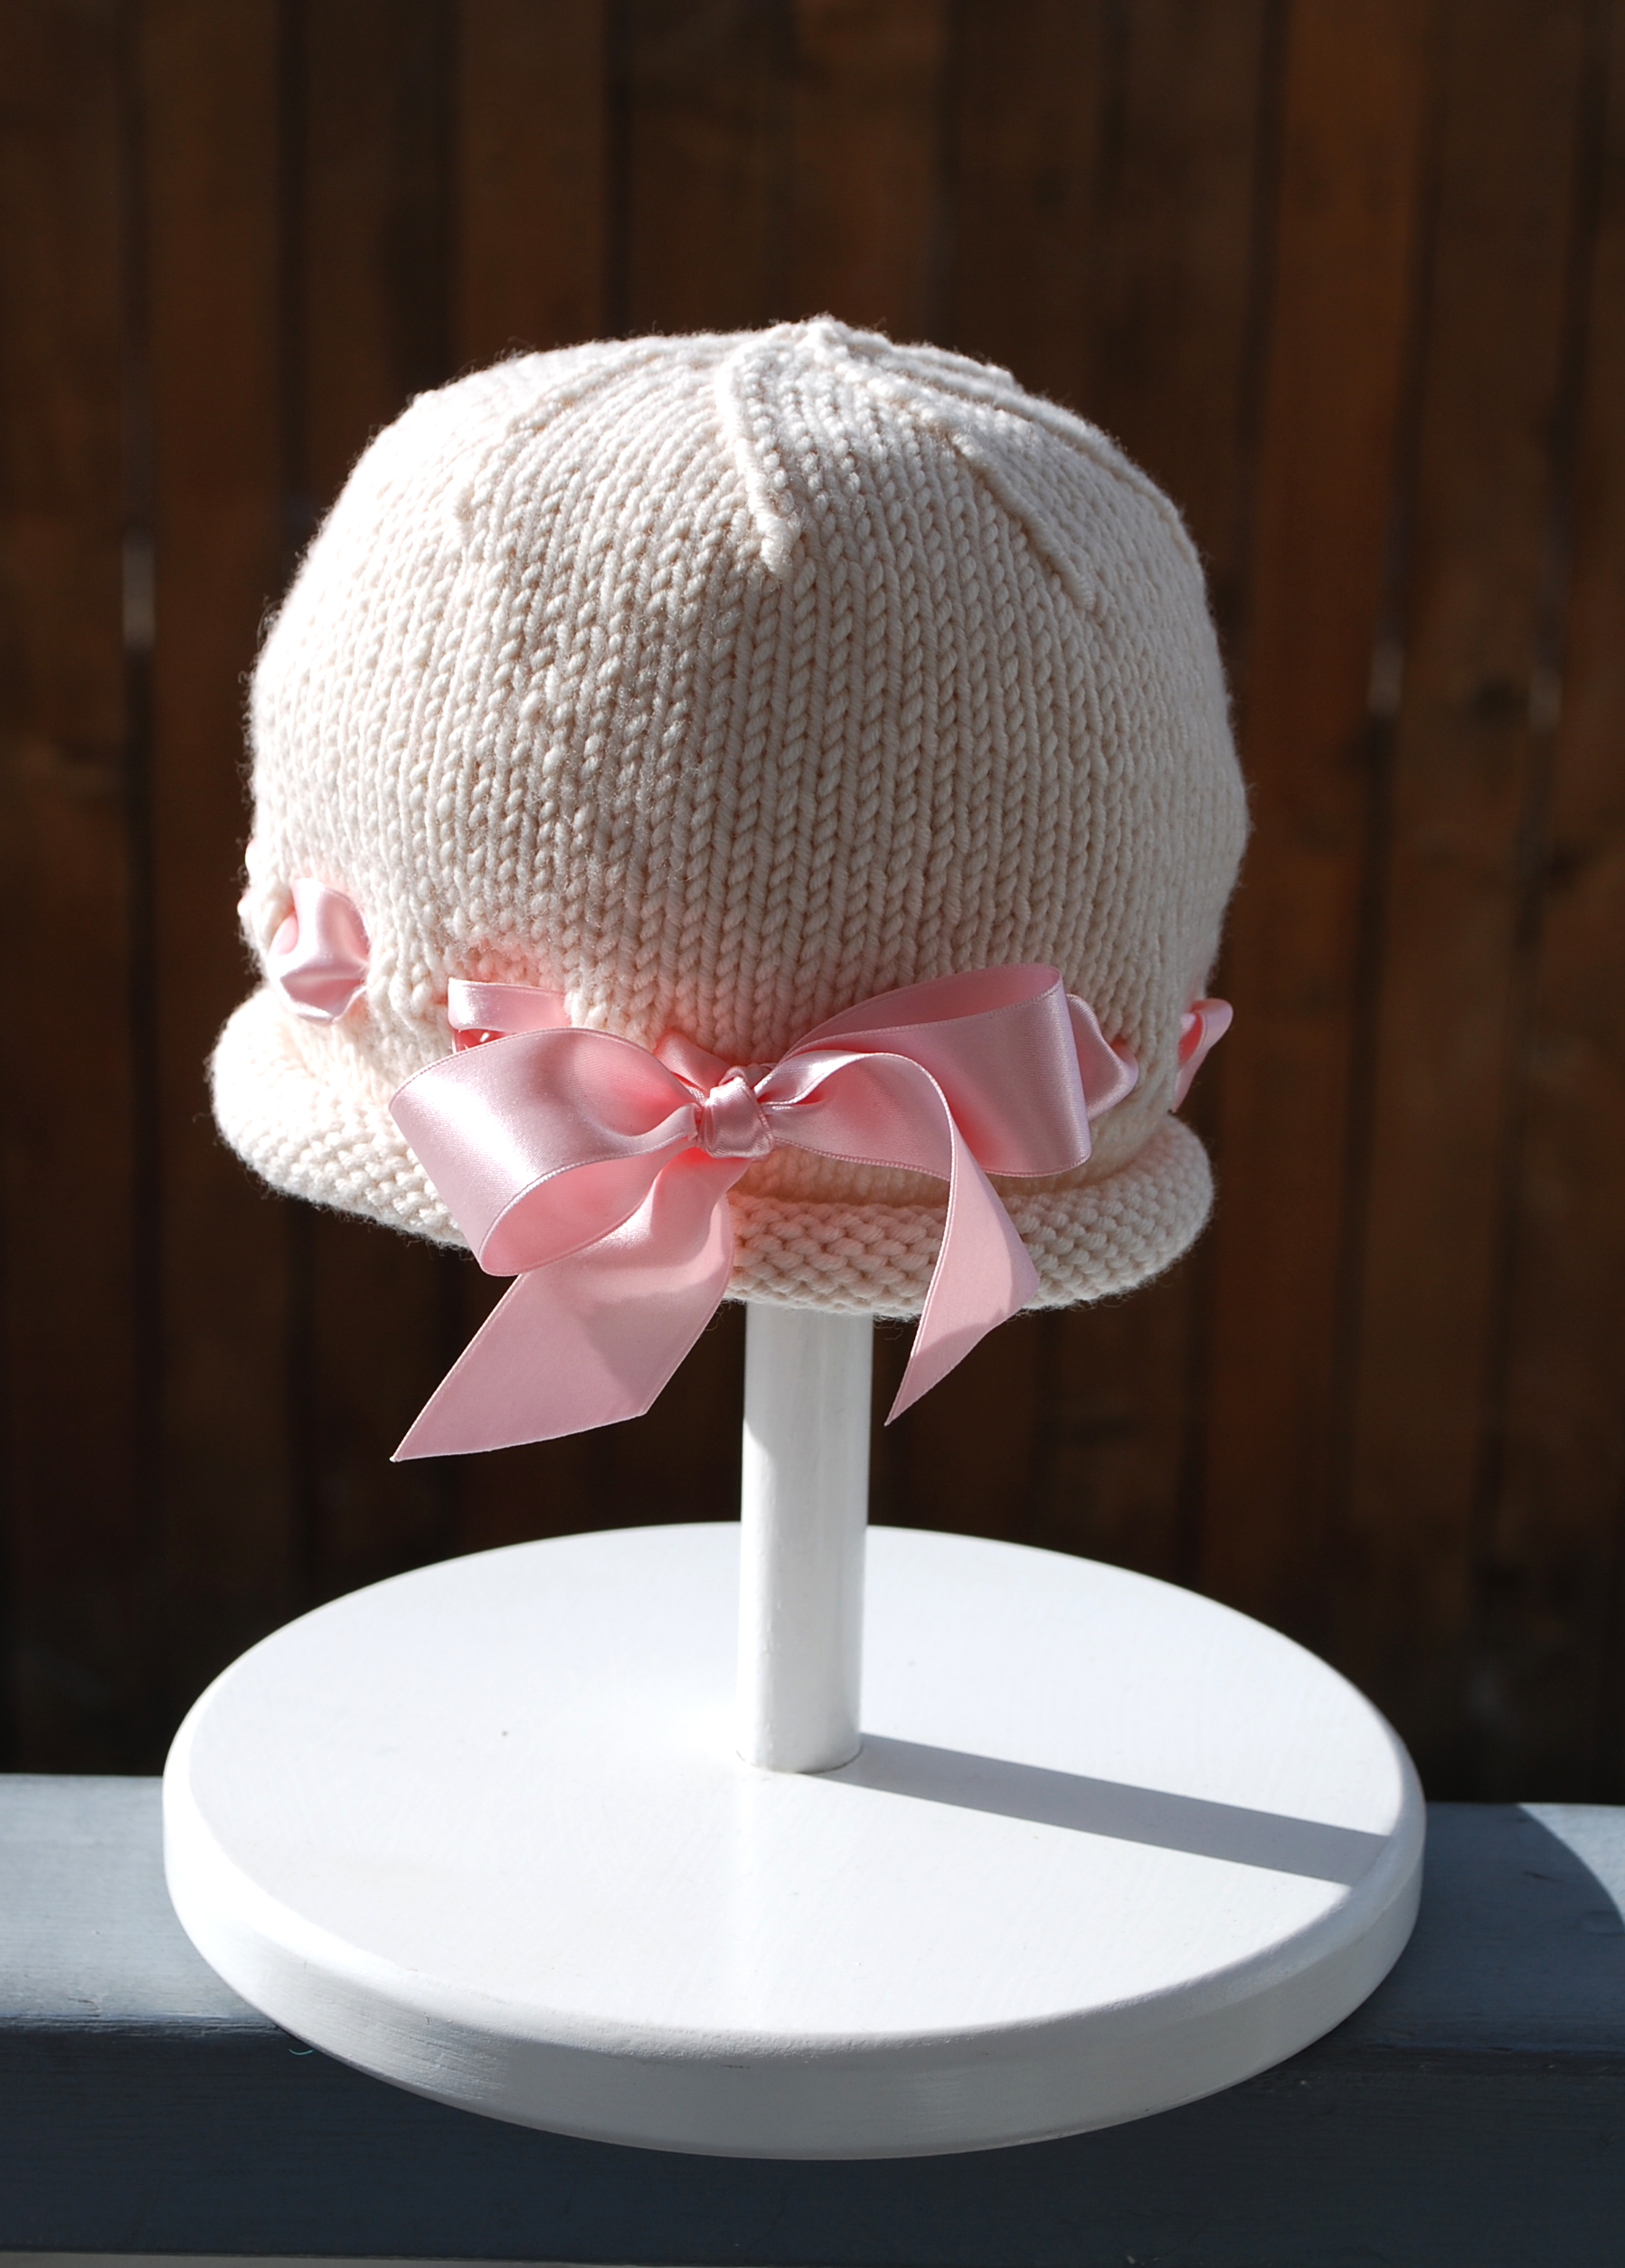 How to Crochet a Baby Bonnet | eHow.com